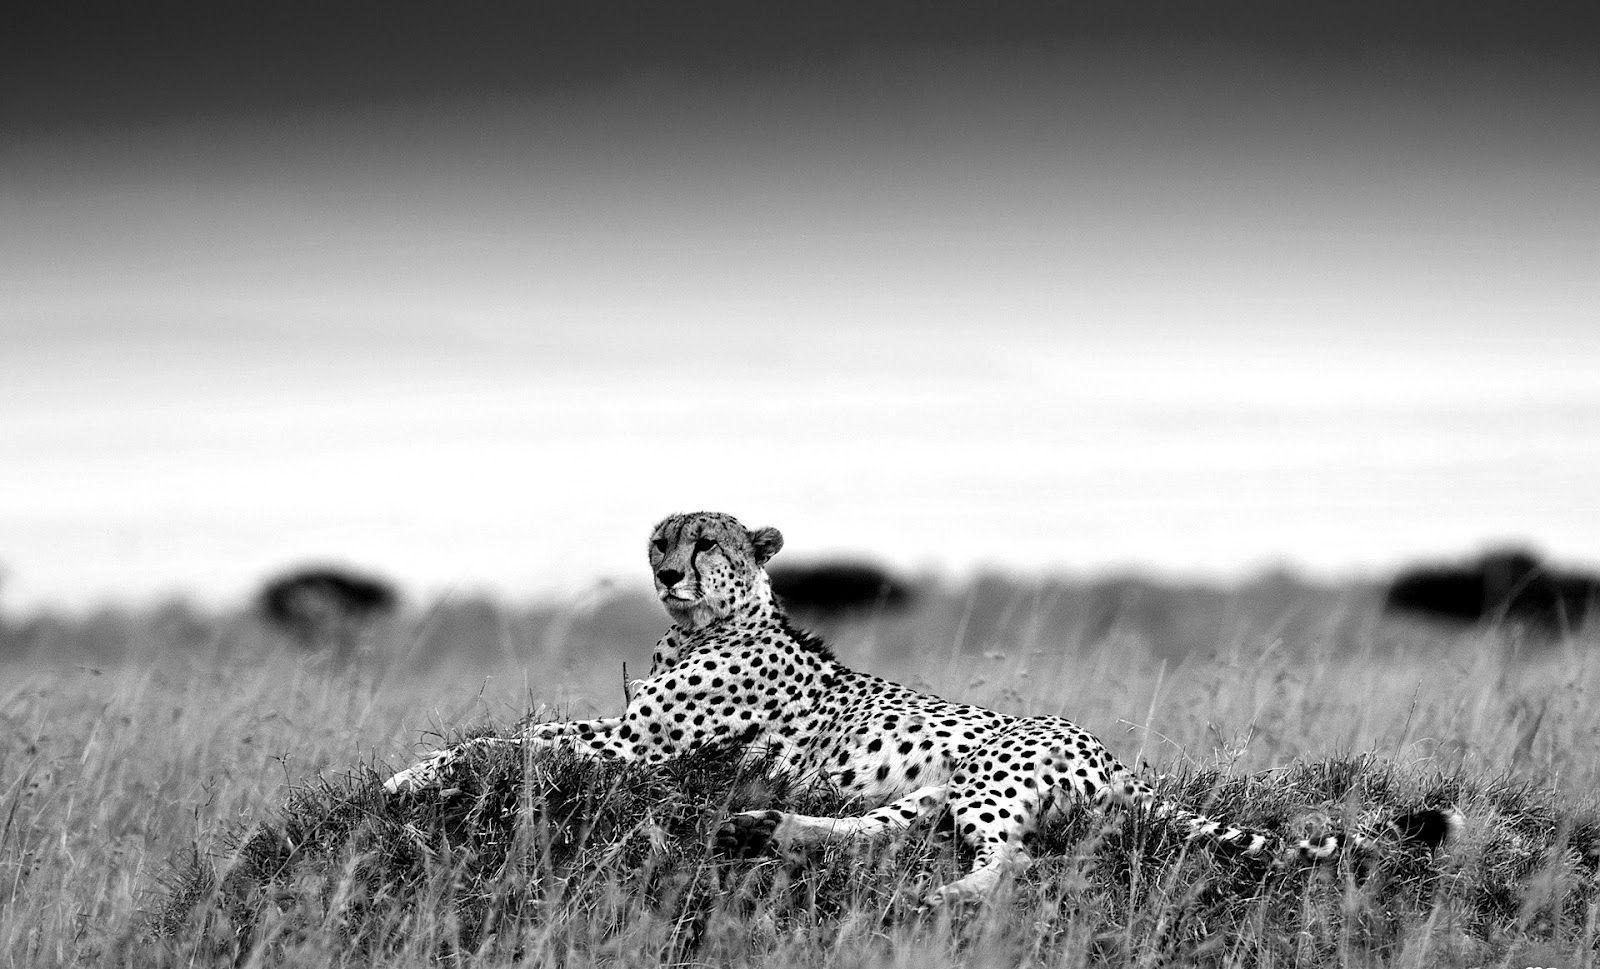 picture of a cheetah black cheetah wallpapers wallpaper cave picture a of cheetah